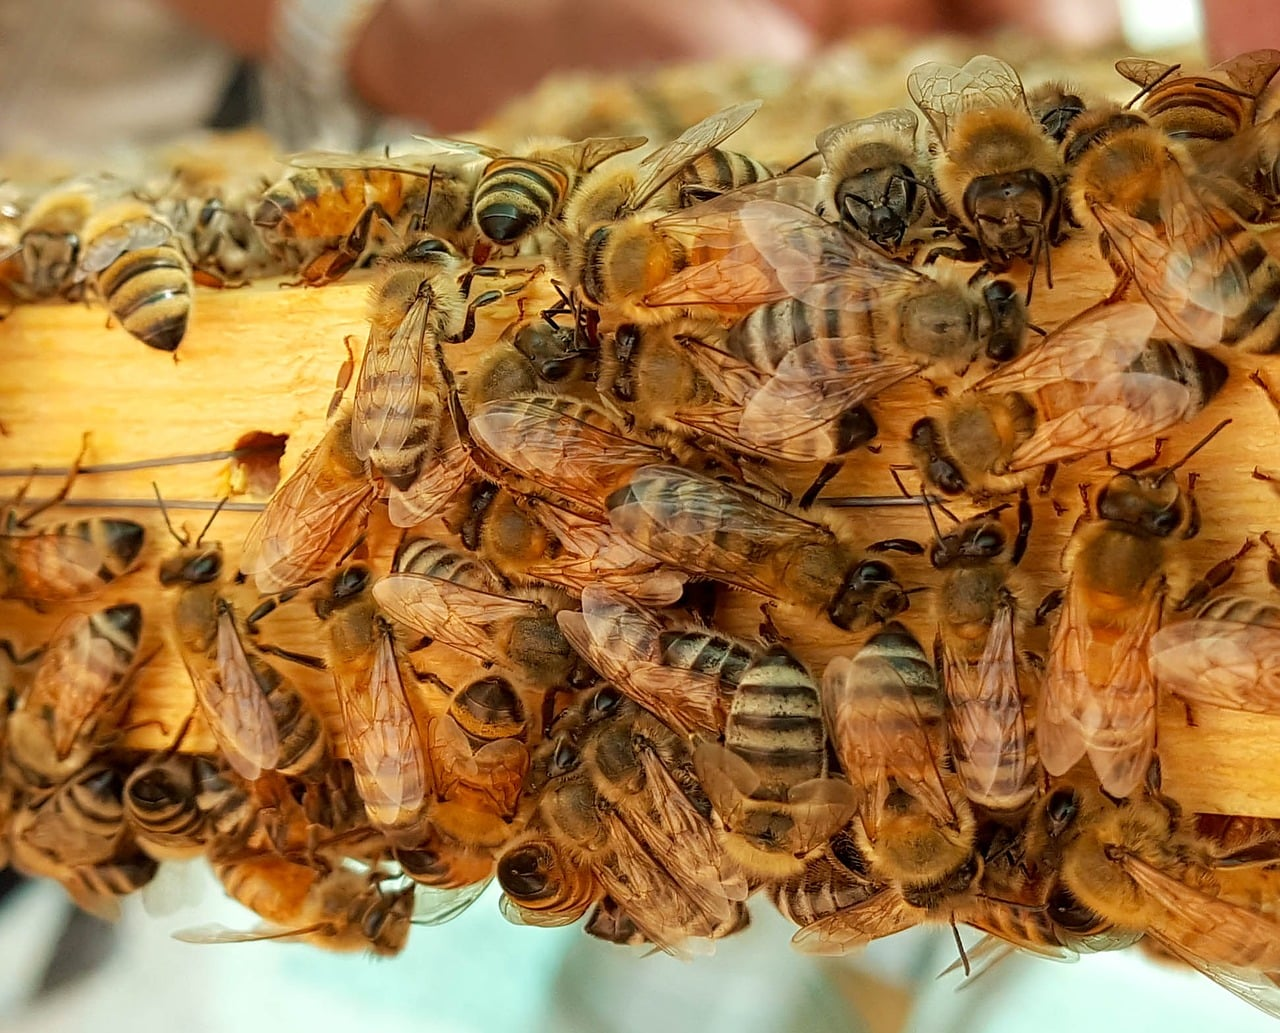 Honeybees Can Do Basic Math